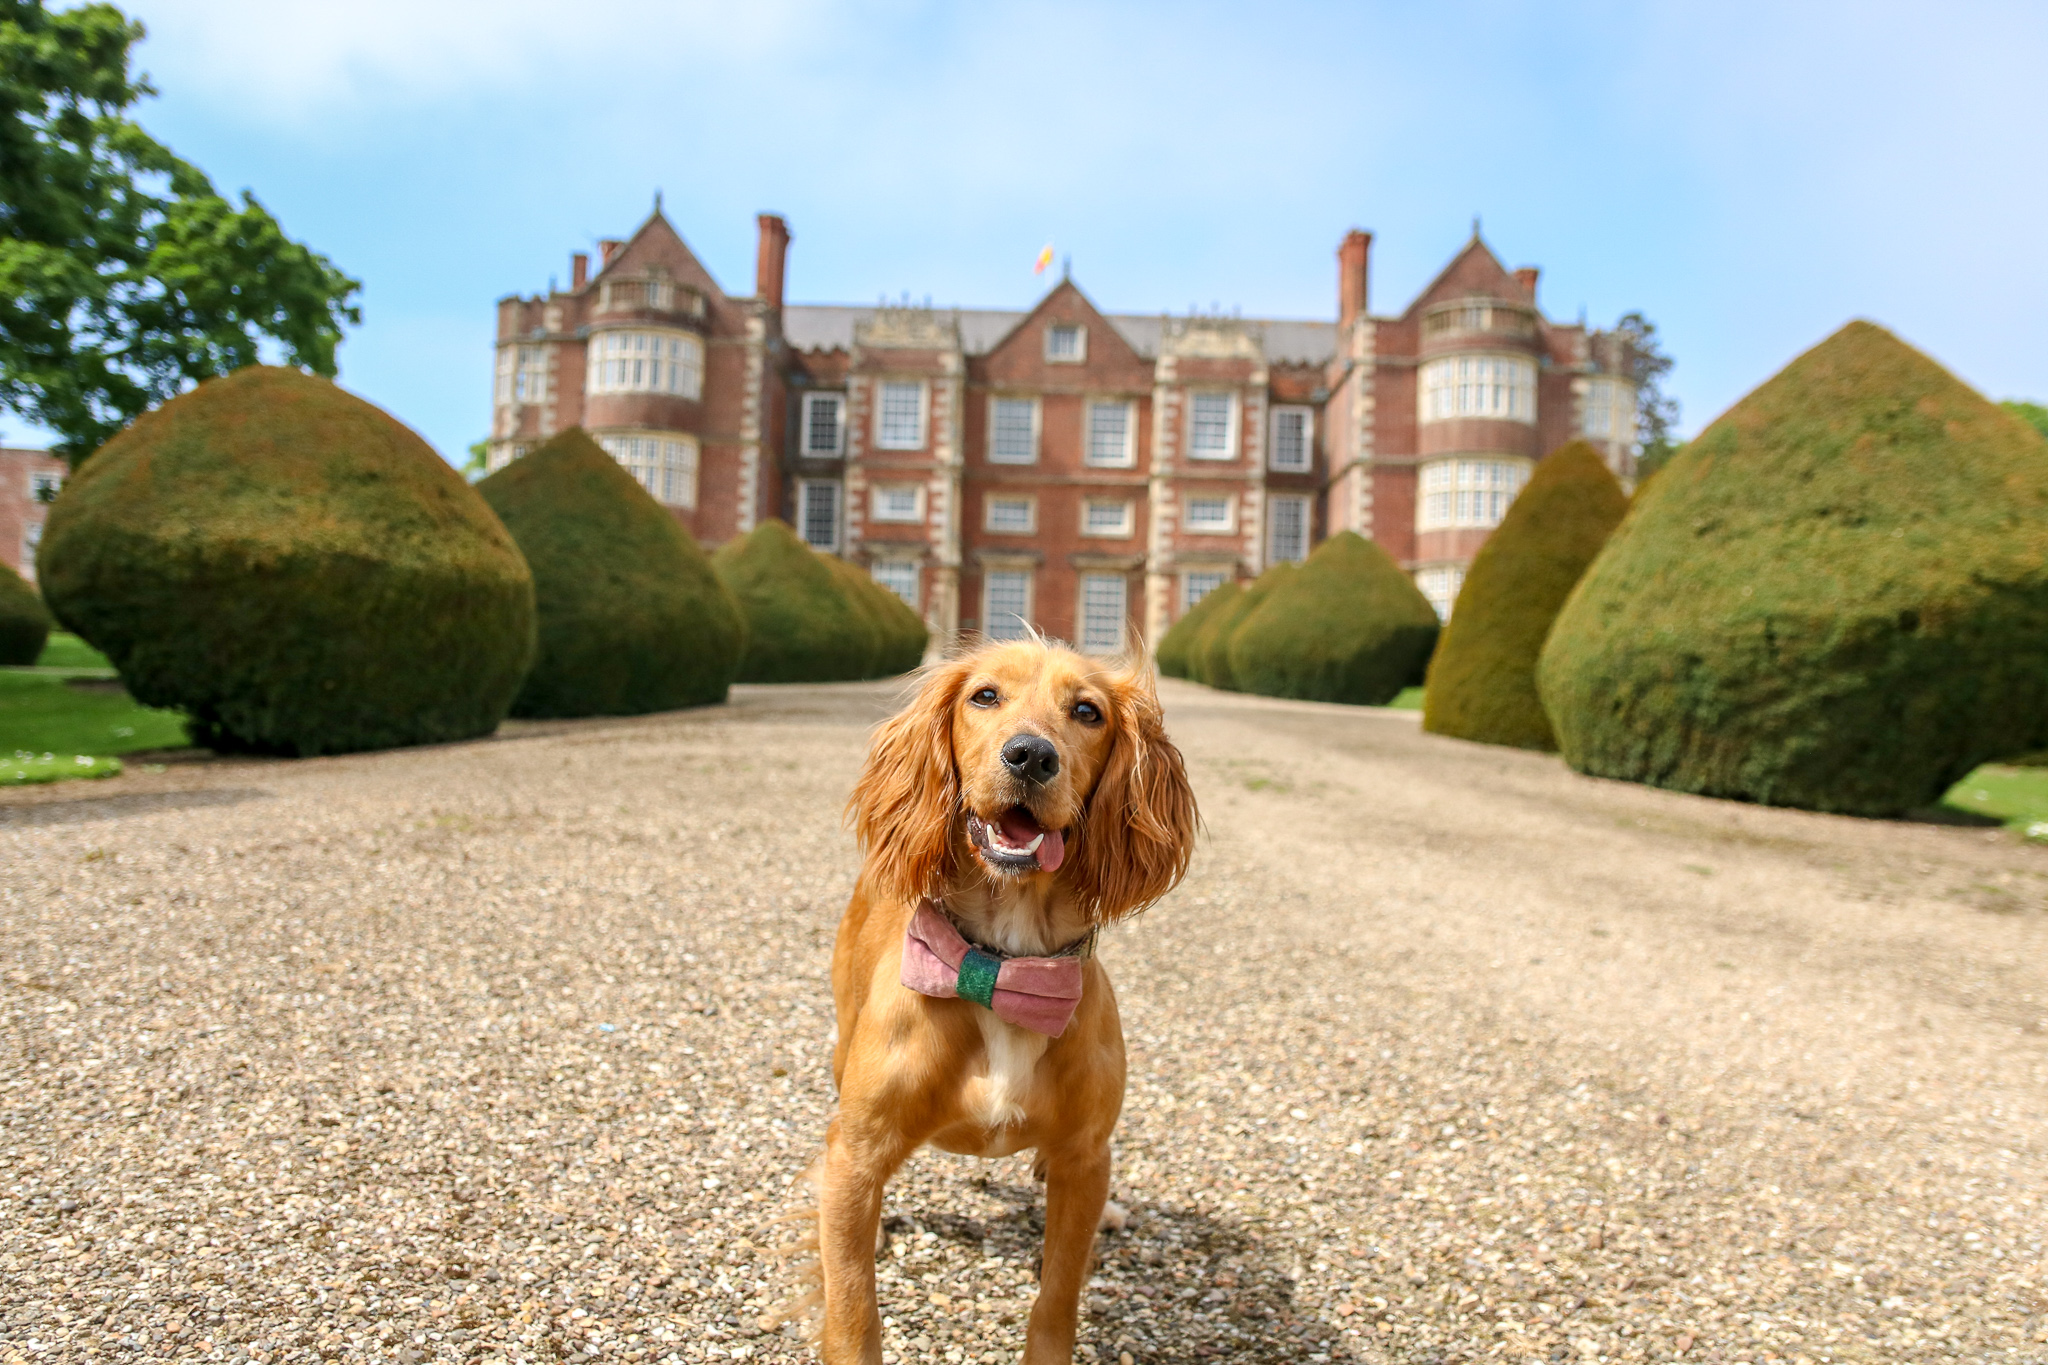 Dog Friendly East Yorkshire: Burton Agnes Hall and walks, Bridlington